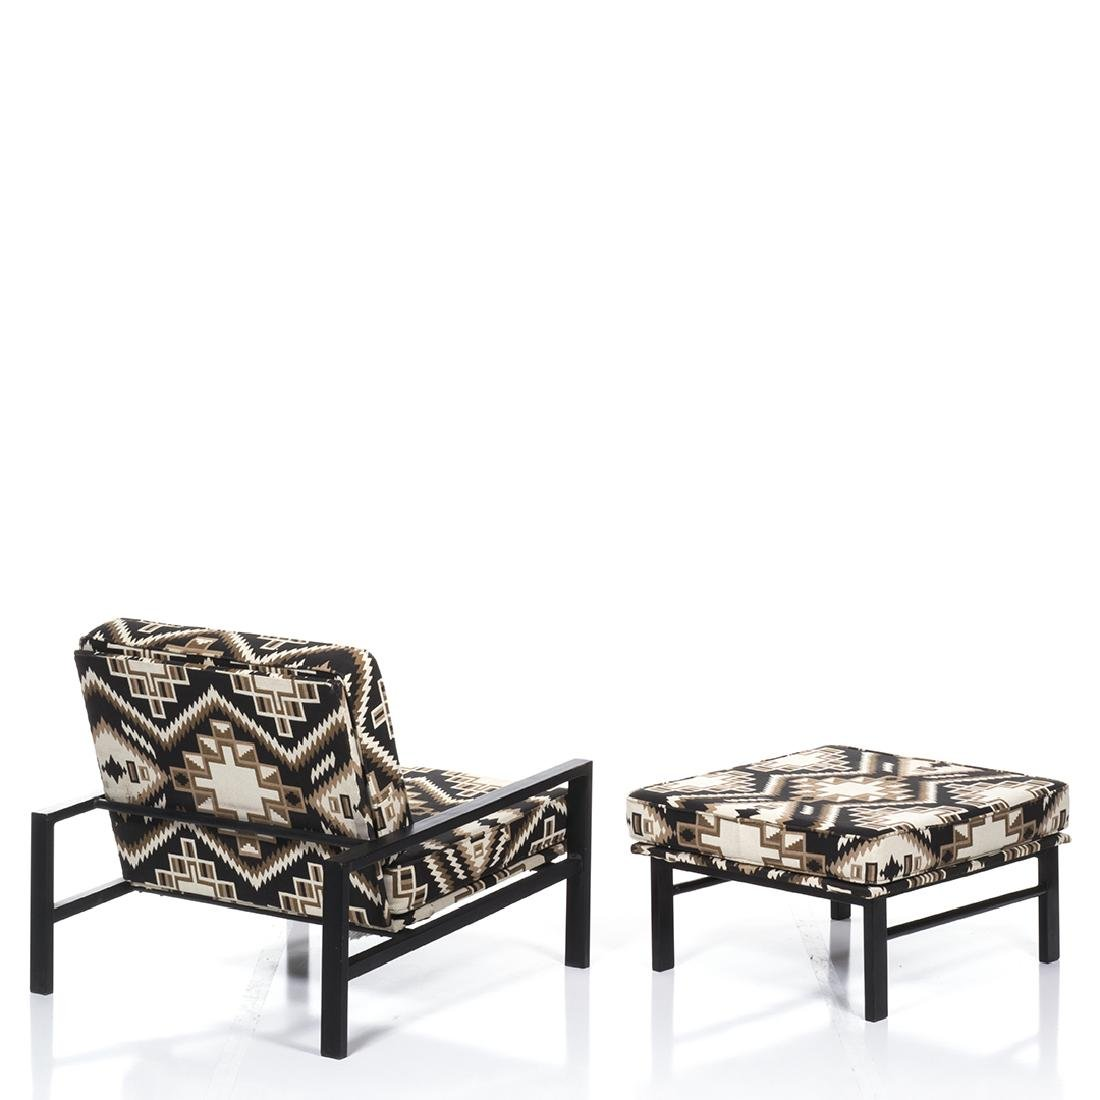 Van Keppel and Green Lounge Chair and Ottoman (2) - 4